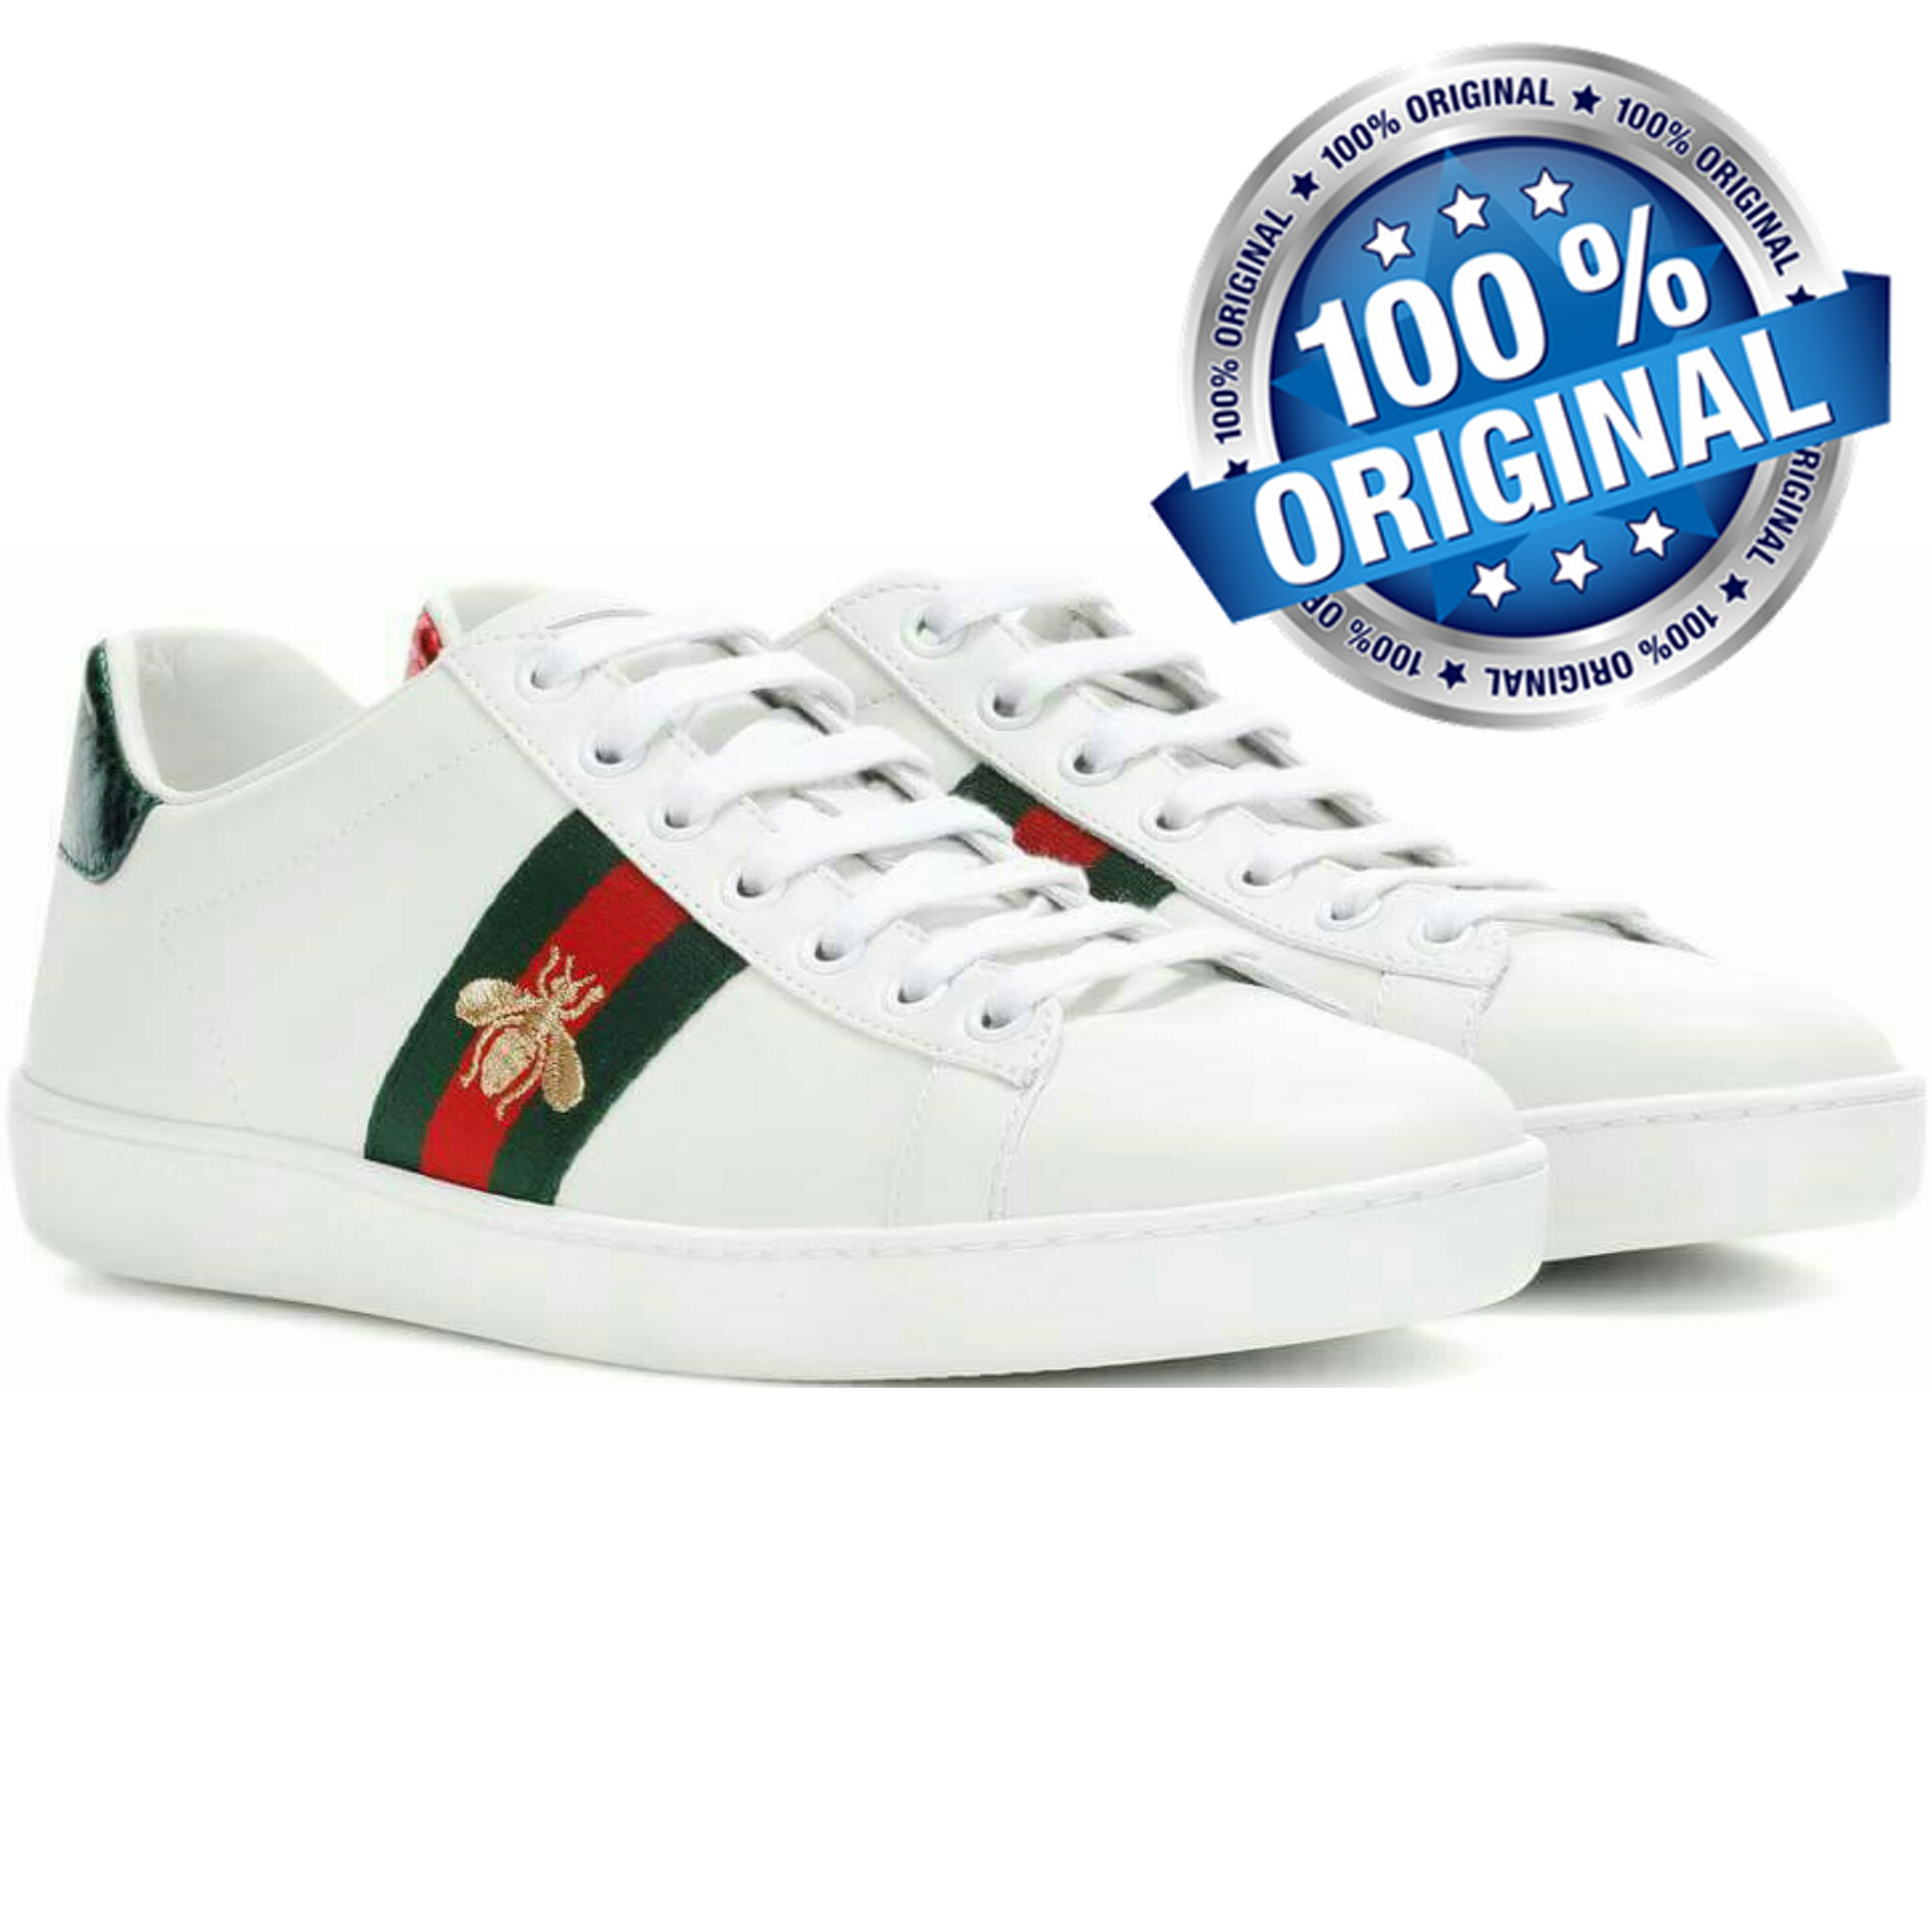 e6c140dcddc141 100% Original Gucci Ace bee Sneaker For Men Prices In Pakistan ...